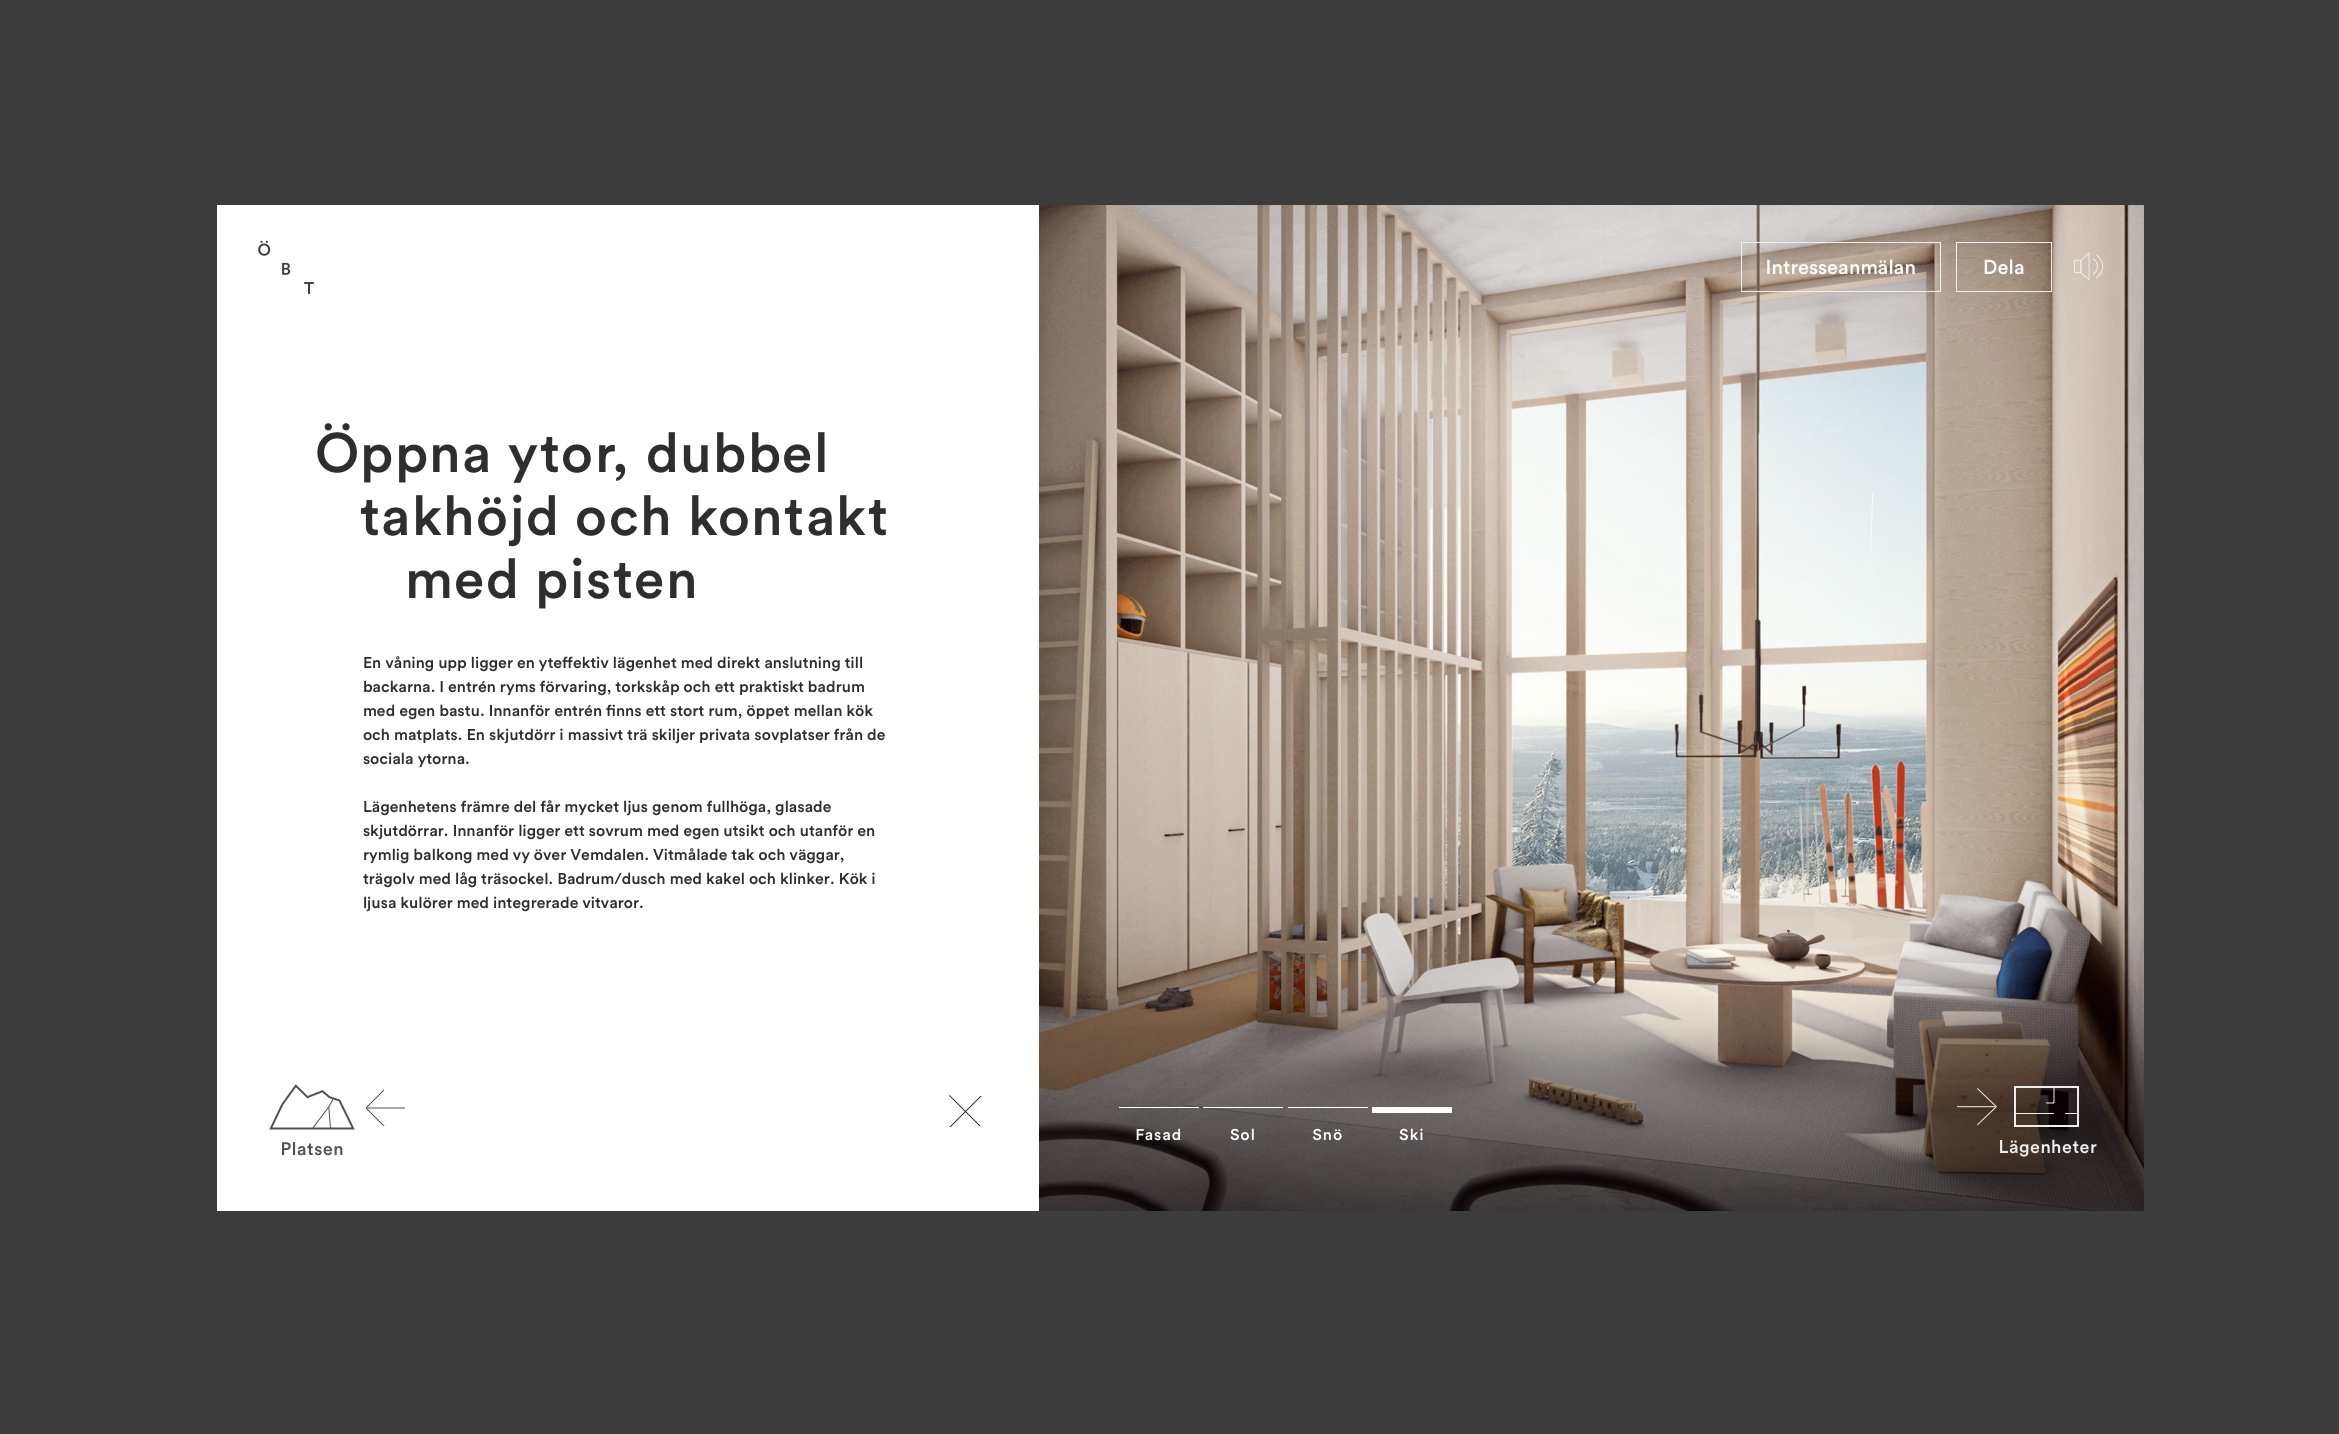 Digital design for Fahlander Architects and Övre Björnterrassen. Material from the process. UI design showing navigation and typography on 3D rendered image of interior.